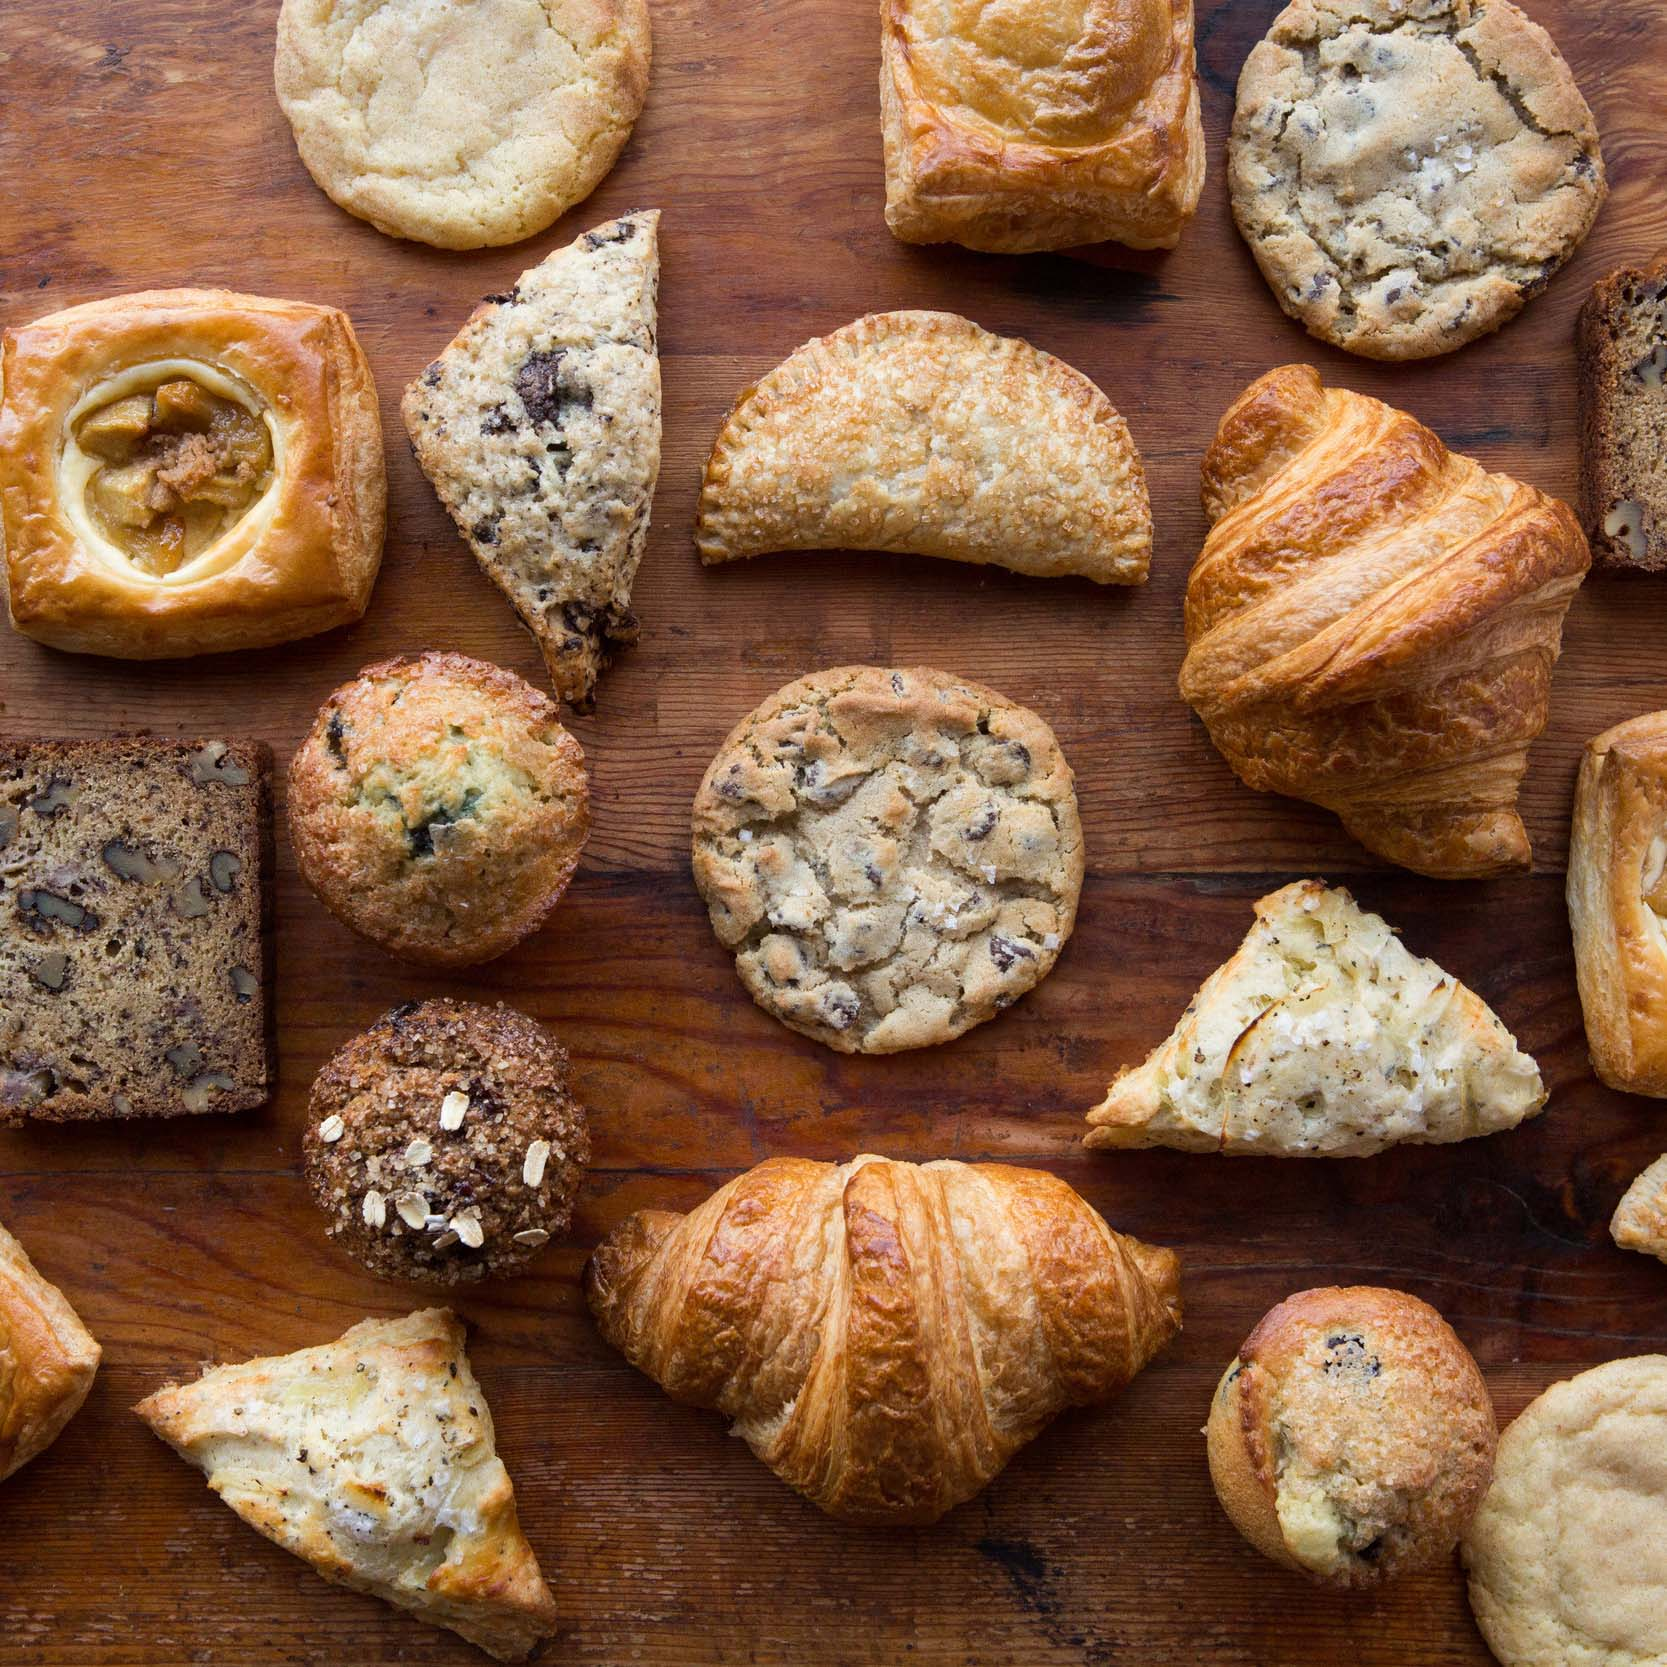 Rushmore Baking - Born from a love of the perfect croissant, and a desire to craft everything under one roof, Rushmore Baking is a new company from Pastry Chef Kristen Napoleoni, General Manager Brian McCaul and Restaurateur Nate Tilden.